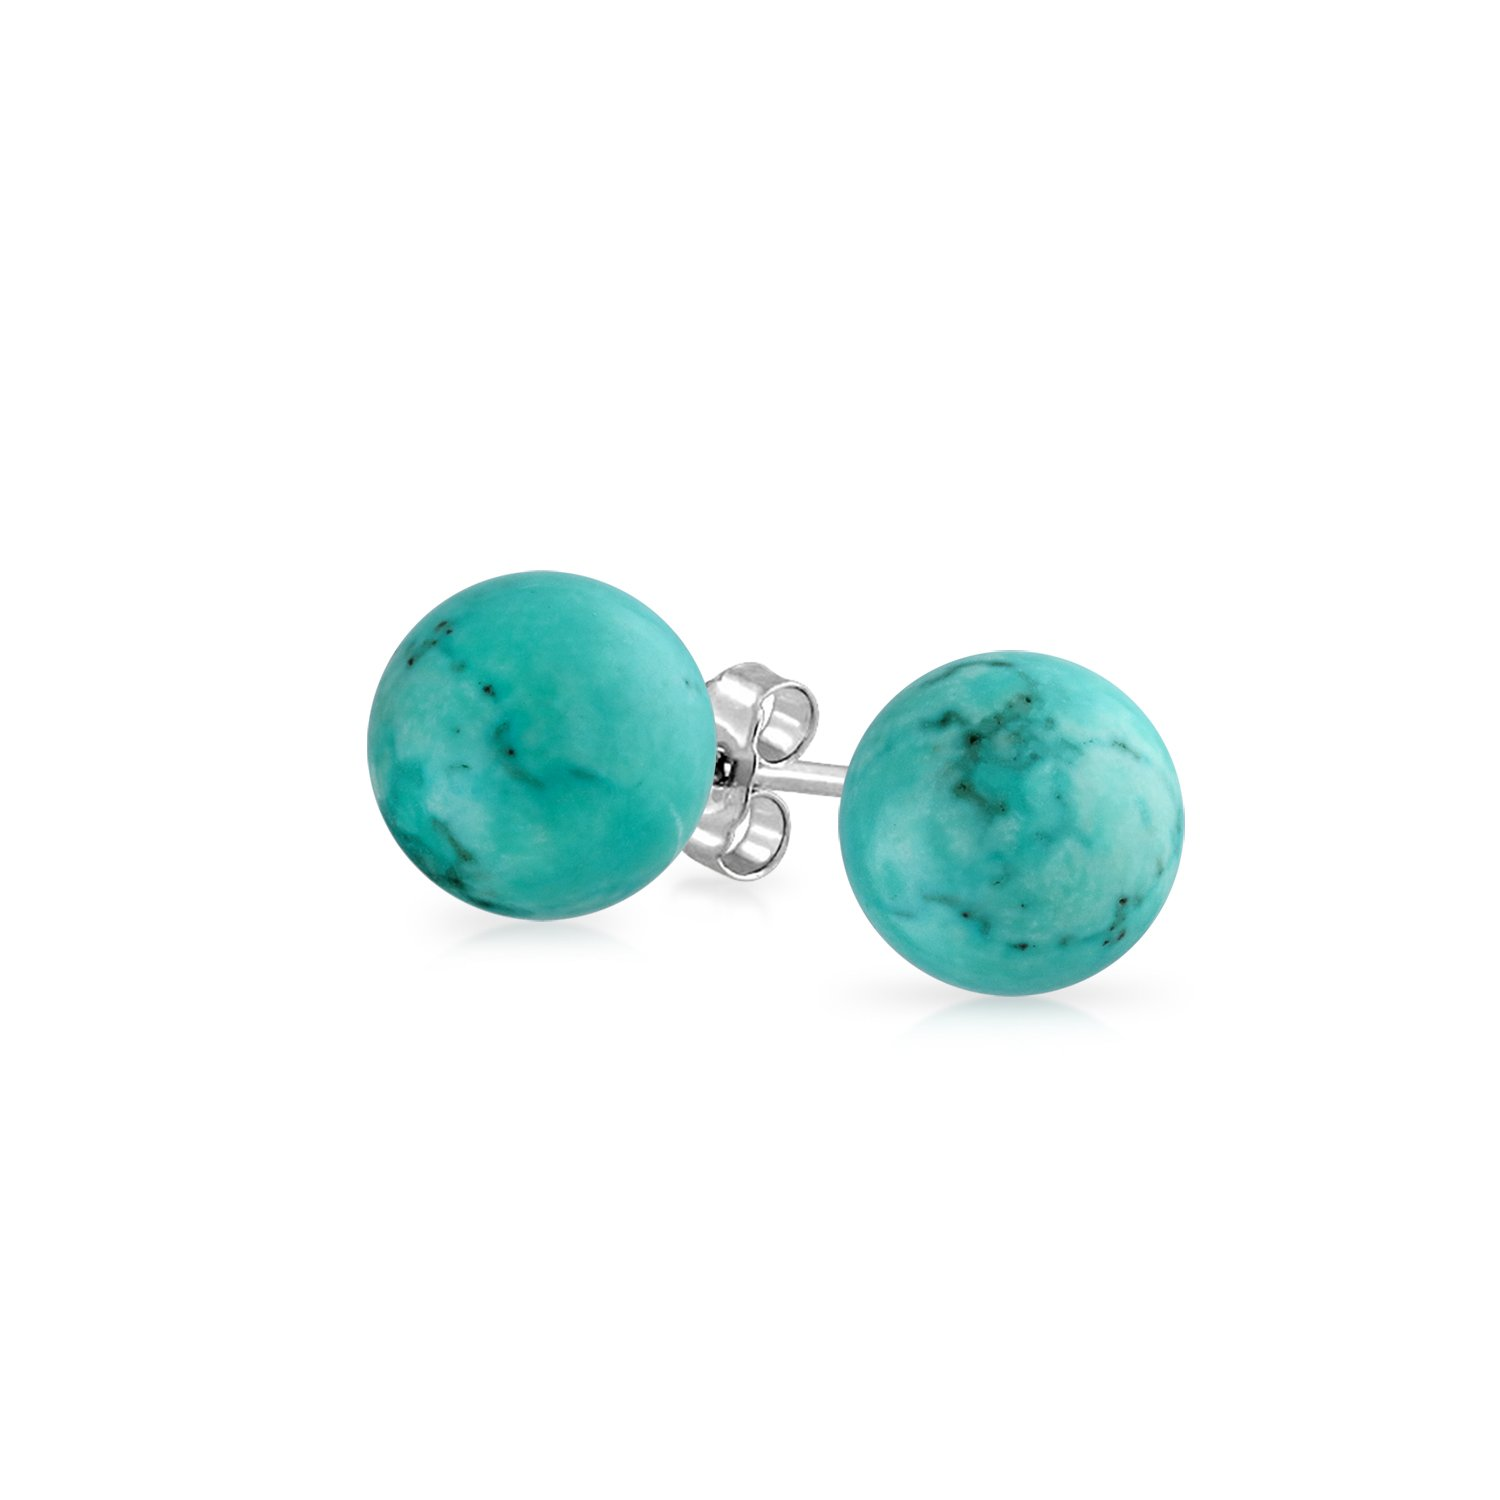 Reconstituted Turquoise Sterling Silver Ball Stud Earrings 7mm